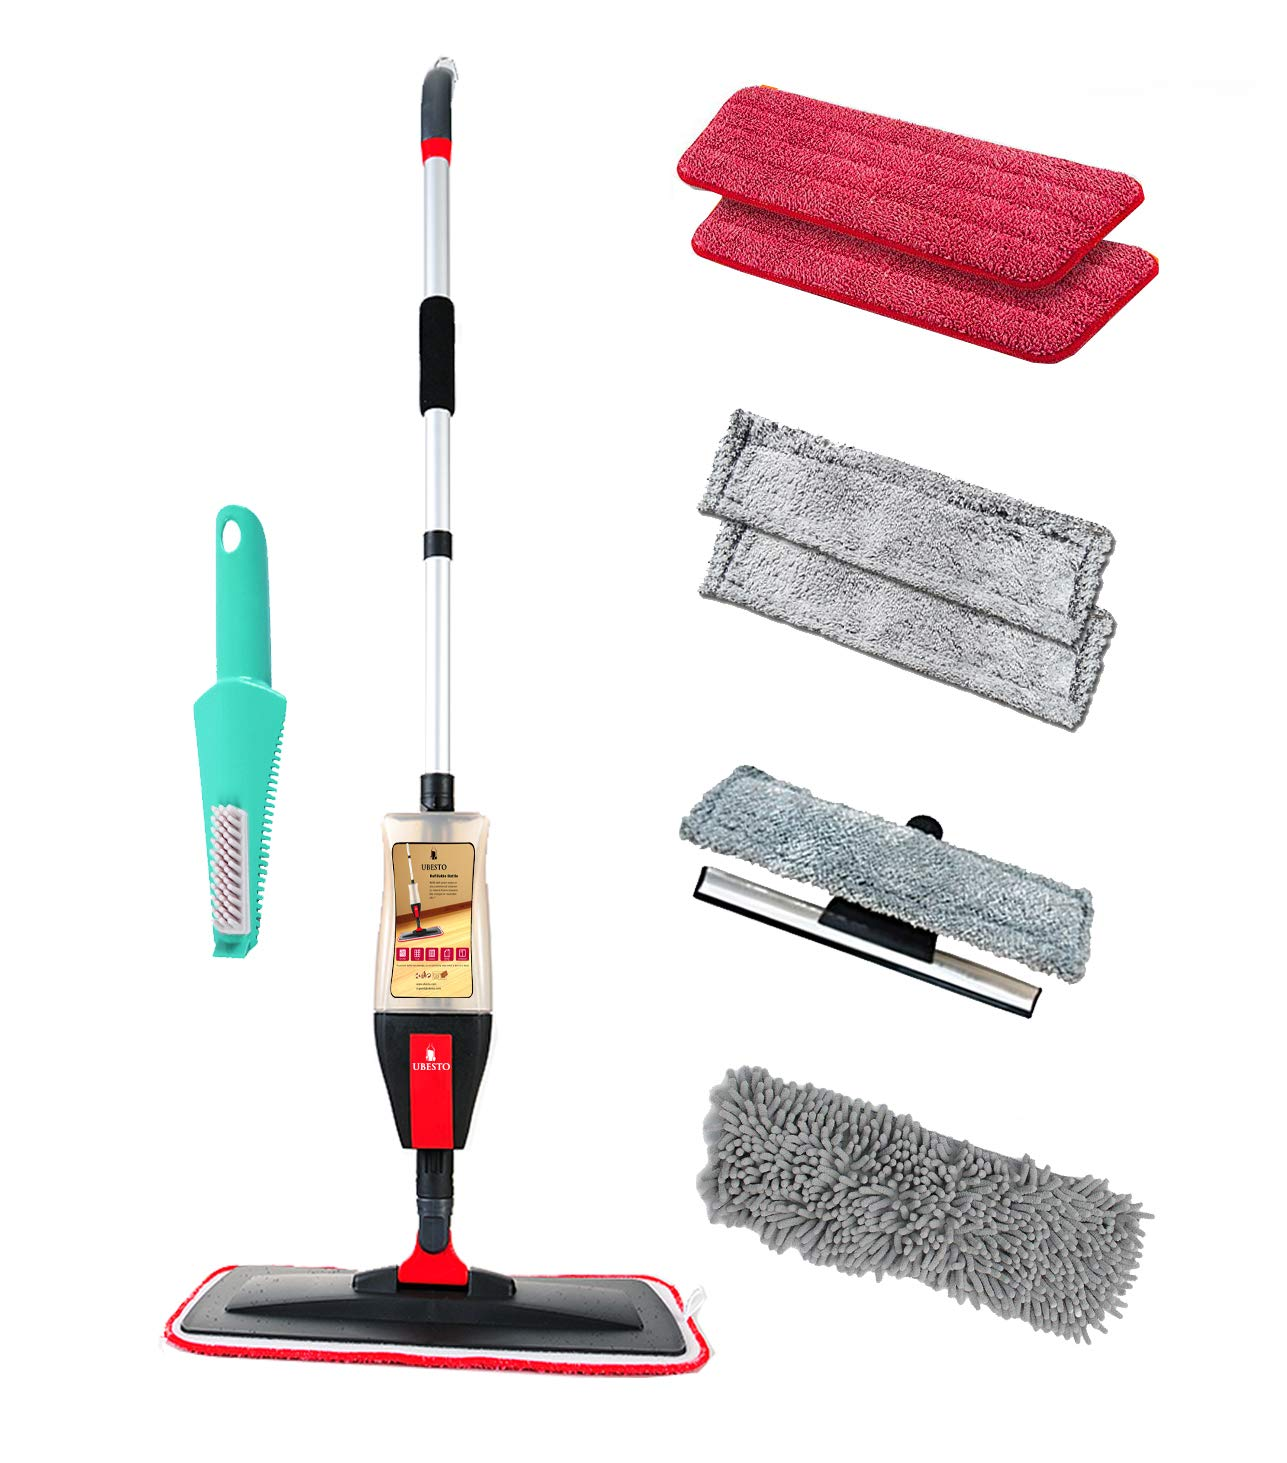 Floor Spray Mop Kit with 4-in-1 Function, Mop Set for Vinyl, Hardwood, Laminate, Marble, Tile Floors | 7 Accessories: 2 Microfiber Pads, 2 Window Cleaner Pads, 1 Glass Wiper, 1 Chenille Pad, 1 Scraper